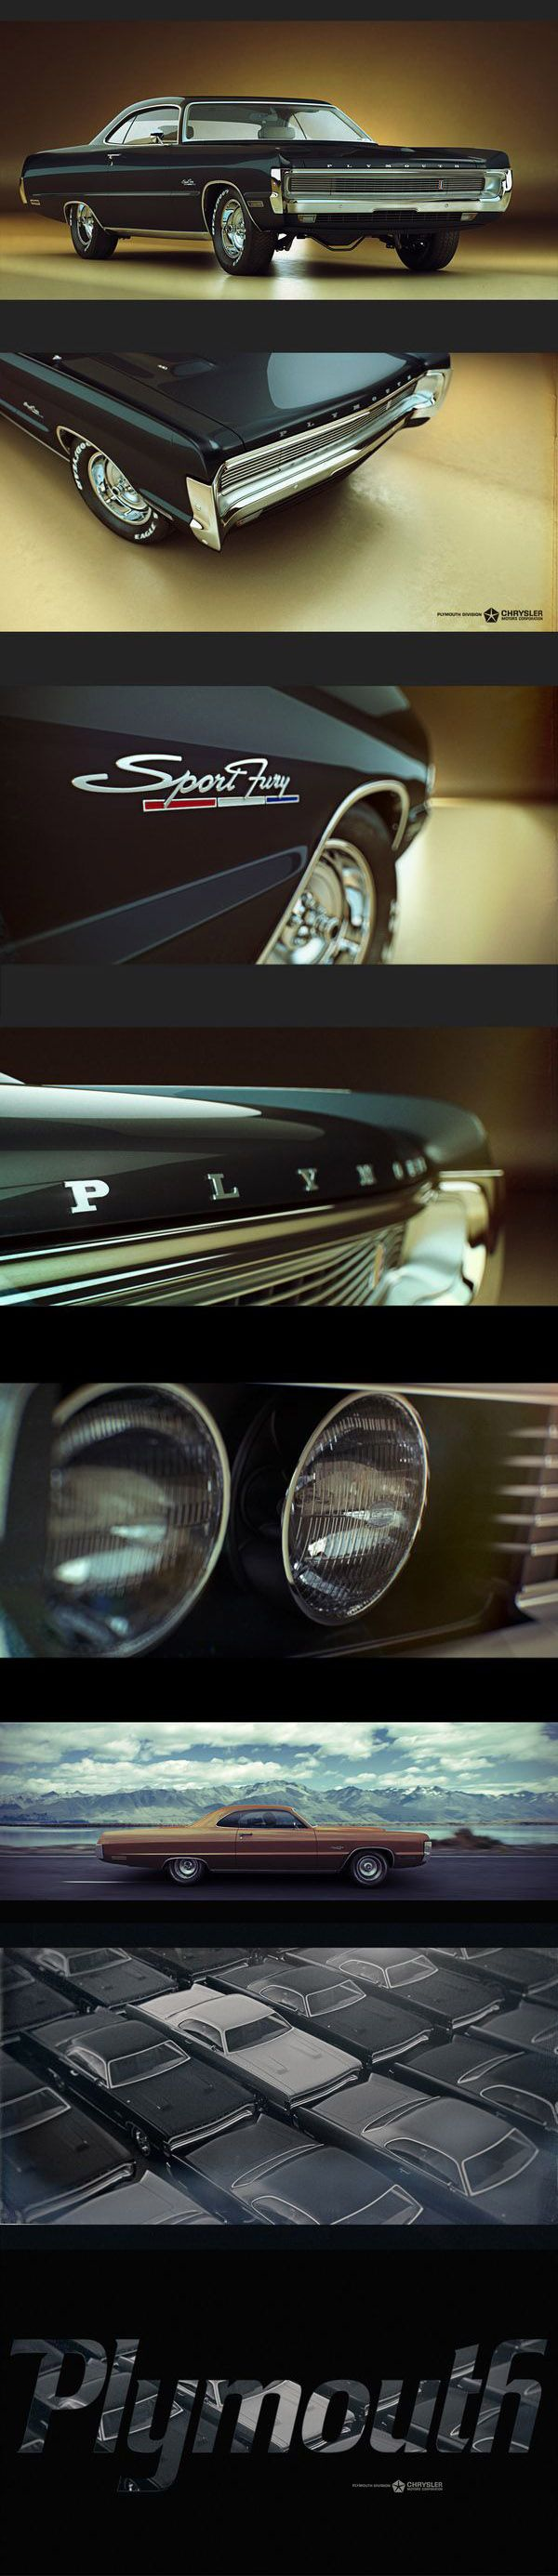 Plymouth Fury..Re-Pin brought to you by#HouseofInsurance #InsuranceEugene #Oregon